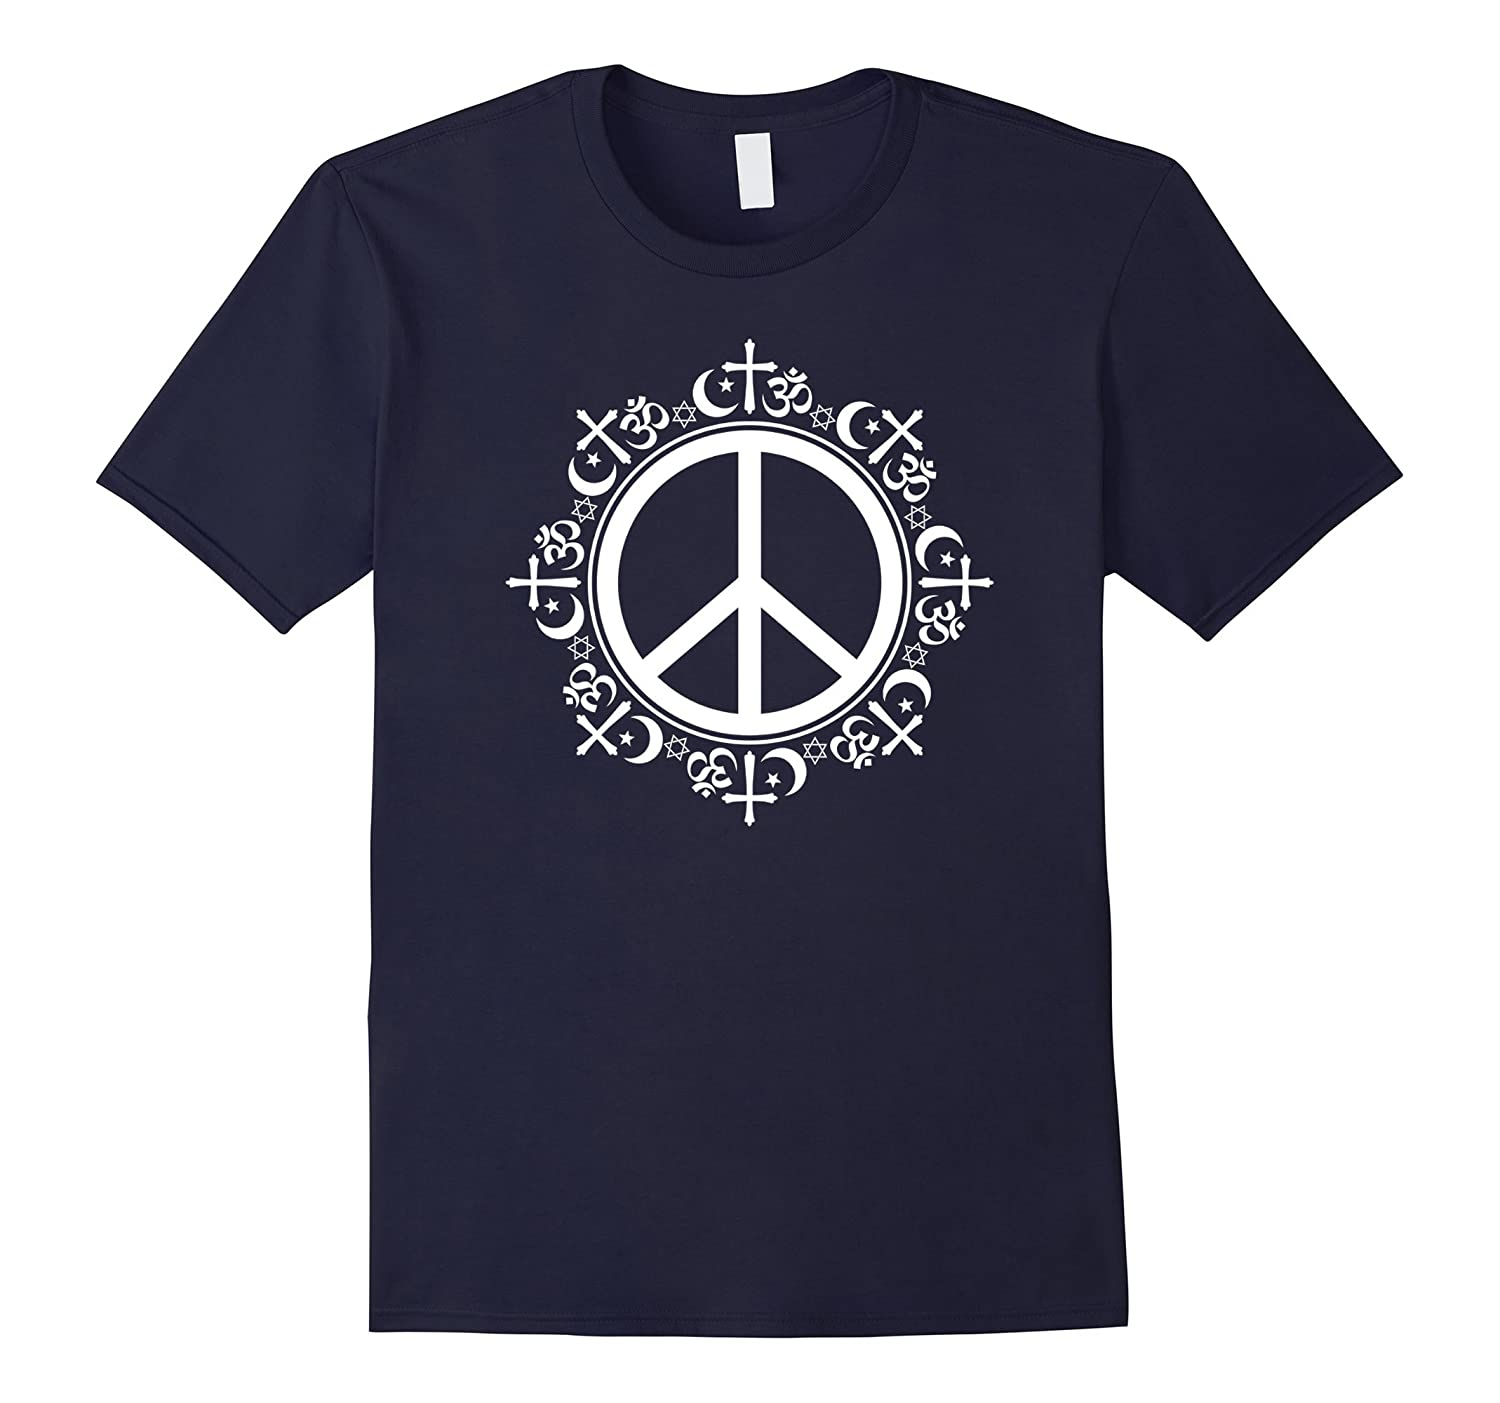 Coexist Peace Sign Interfaith Human Equality Rights T-Shirt-FL